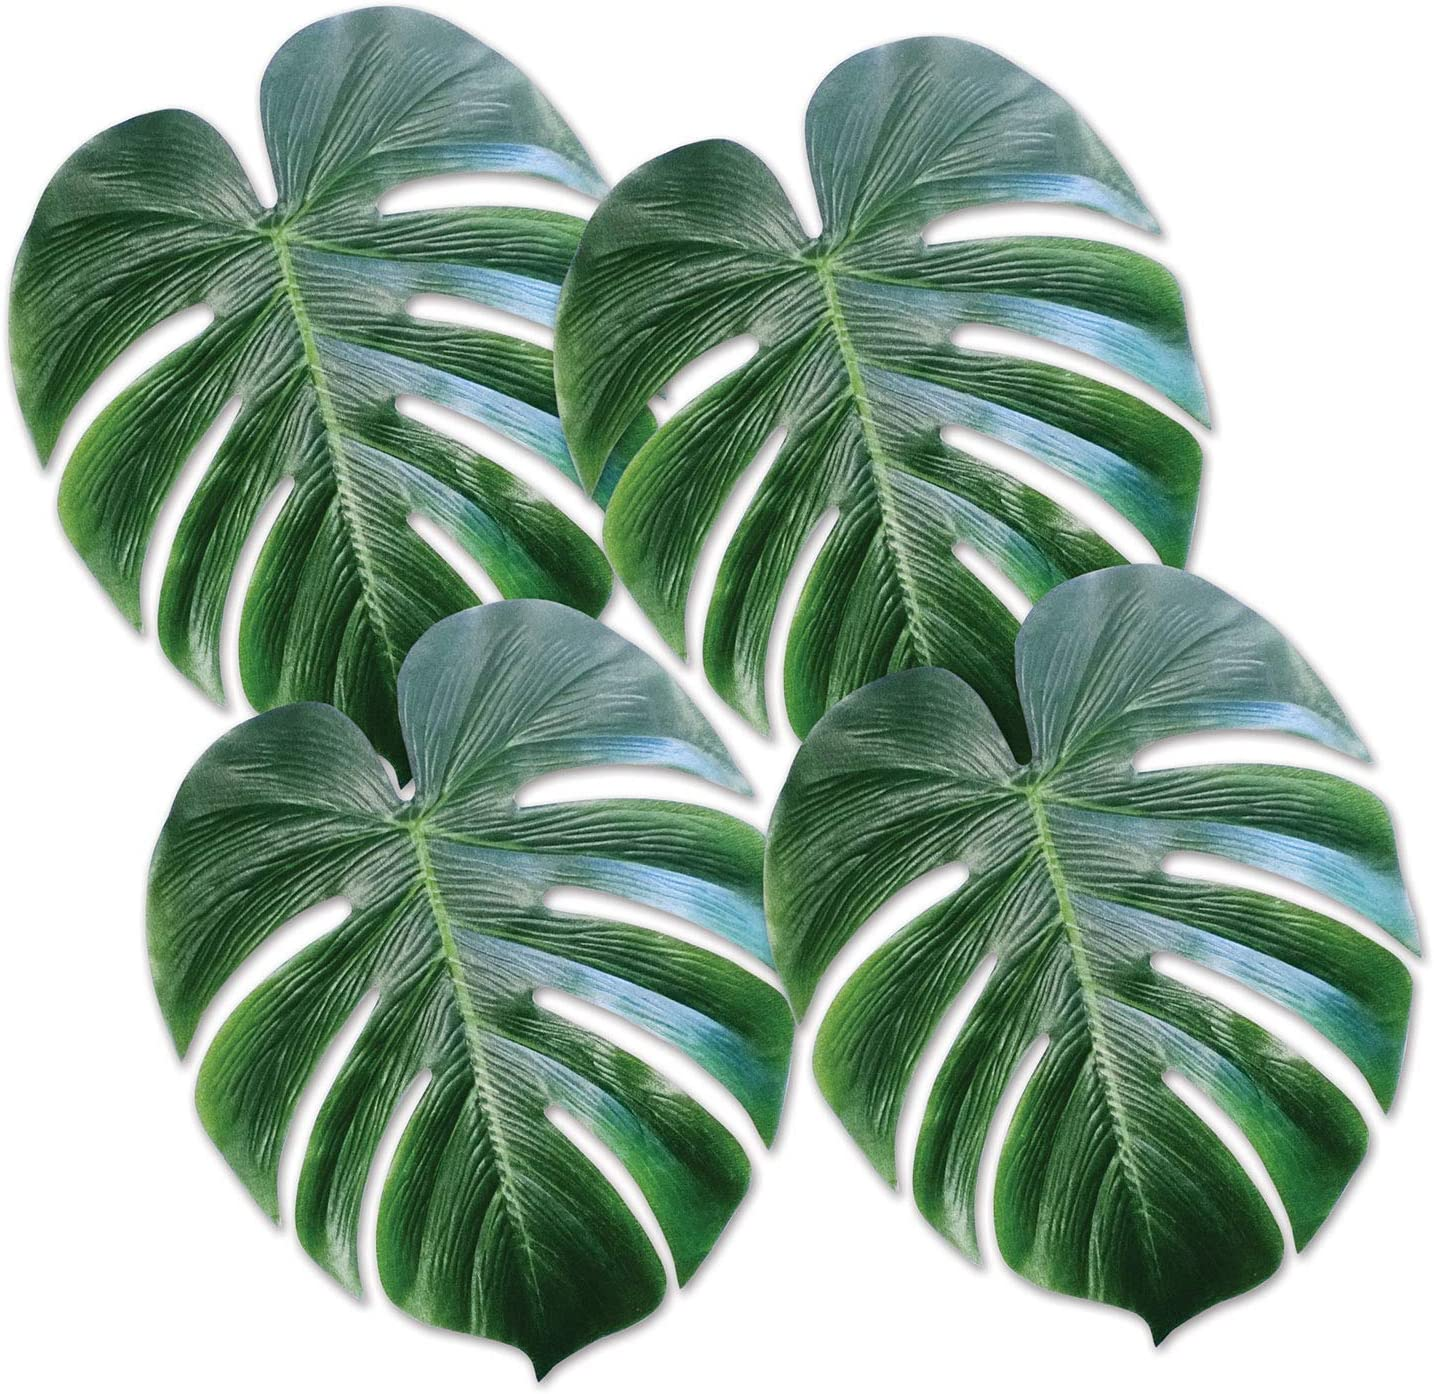 Amazon Com Beistle Tropical Palm Leaves 13 Inch 4 Count Kitchen Dining It's the tropical leaves earrings. beistle tropical palm leaves 13 inch 4 count